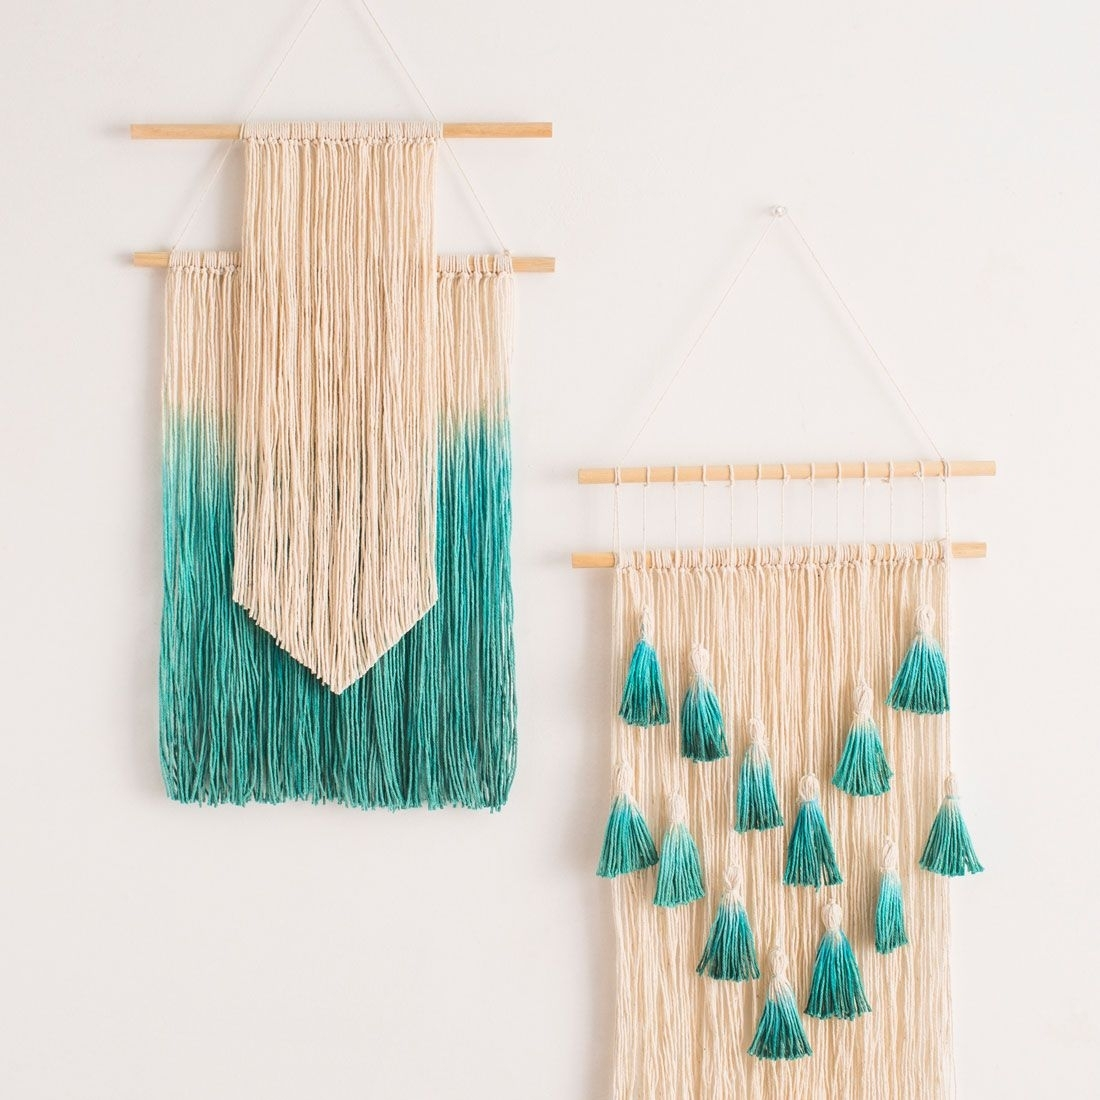 9 Diys For Your College Apartment | Diy Wall Art, Diy Wall And Throughout Best And Newest Woven Fabric Wall Art (View 2 of 15)